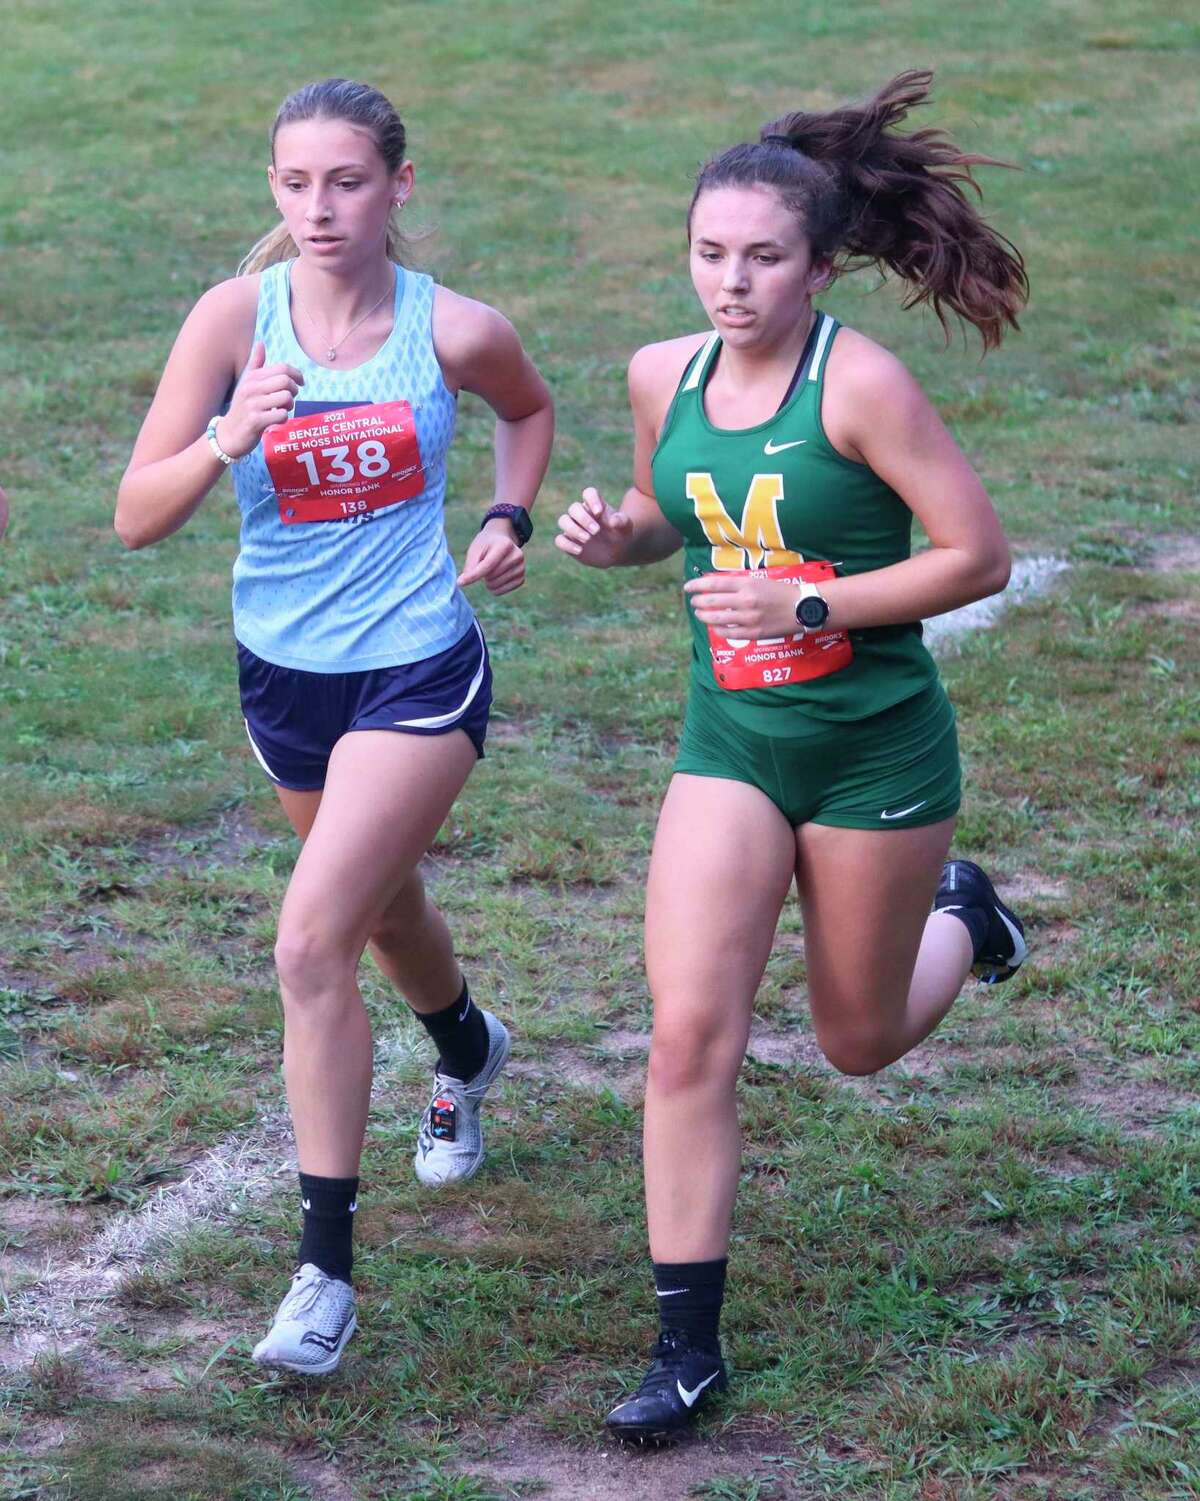 Brethren's Abby Kissling races alongside a runner from McBain after very little sleep the night before Saturday's race, after thunderstorms kept her dog, and by extension her, awake most of the night. (Robert Myers/News Advocate)